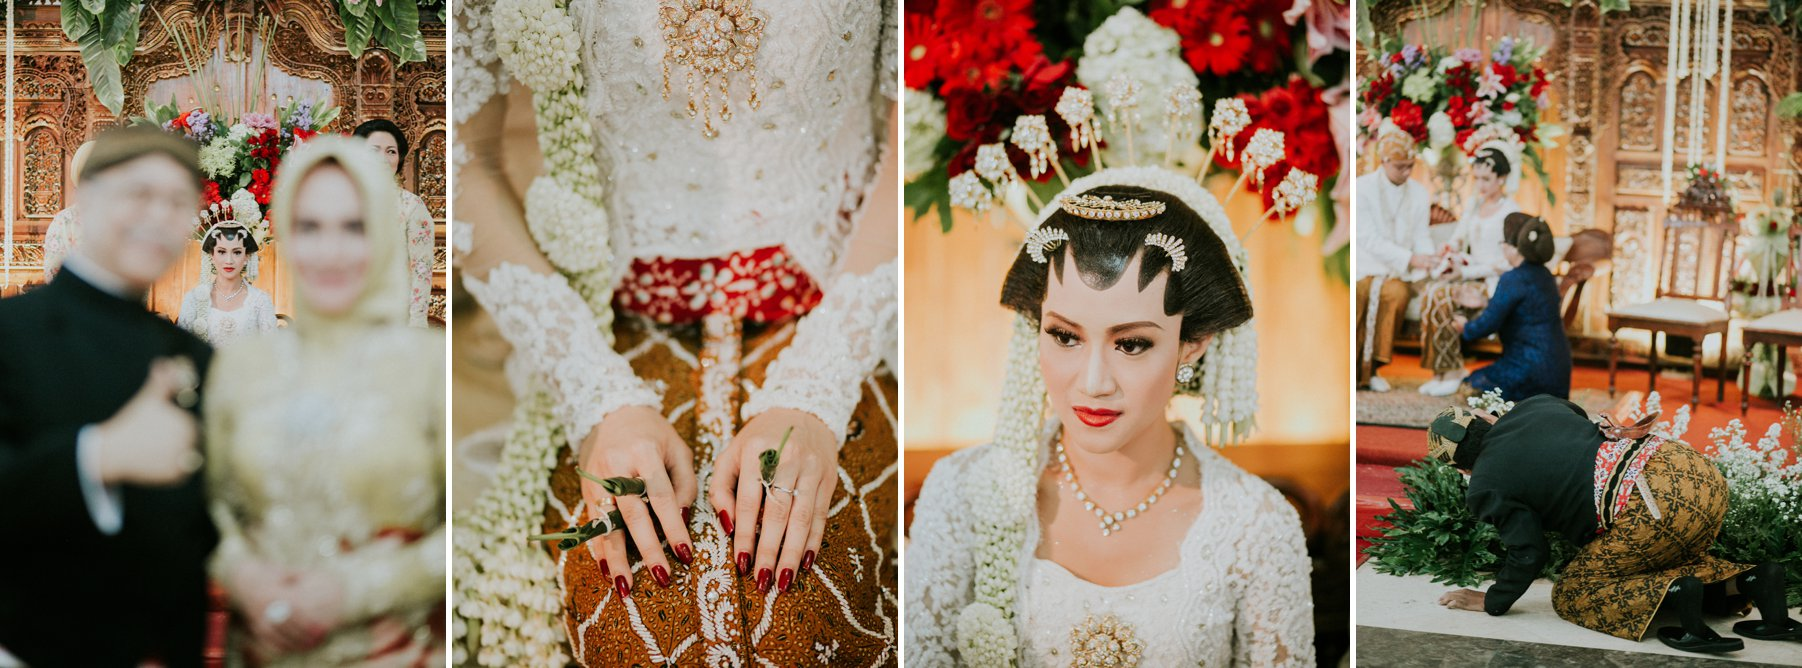 Sampoerna_Strategic_Wedding_Antijitters_Photo_0045